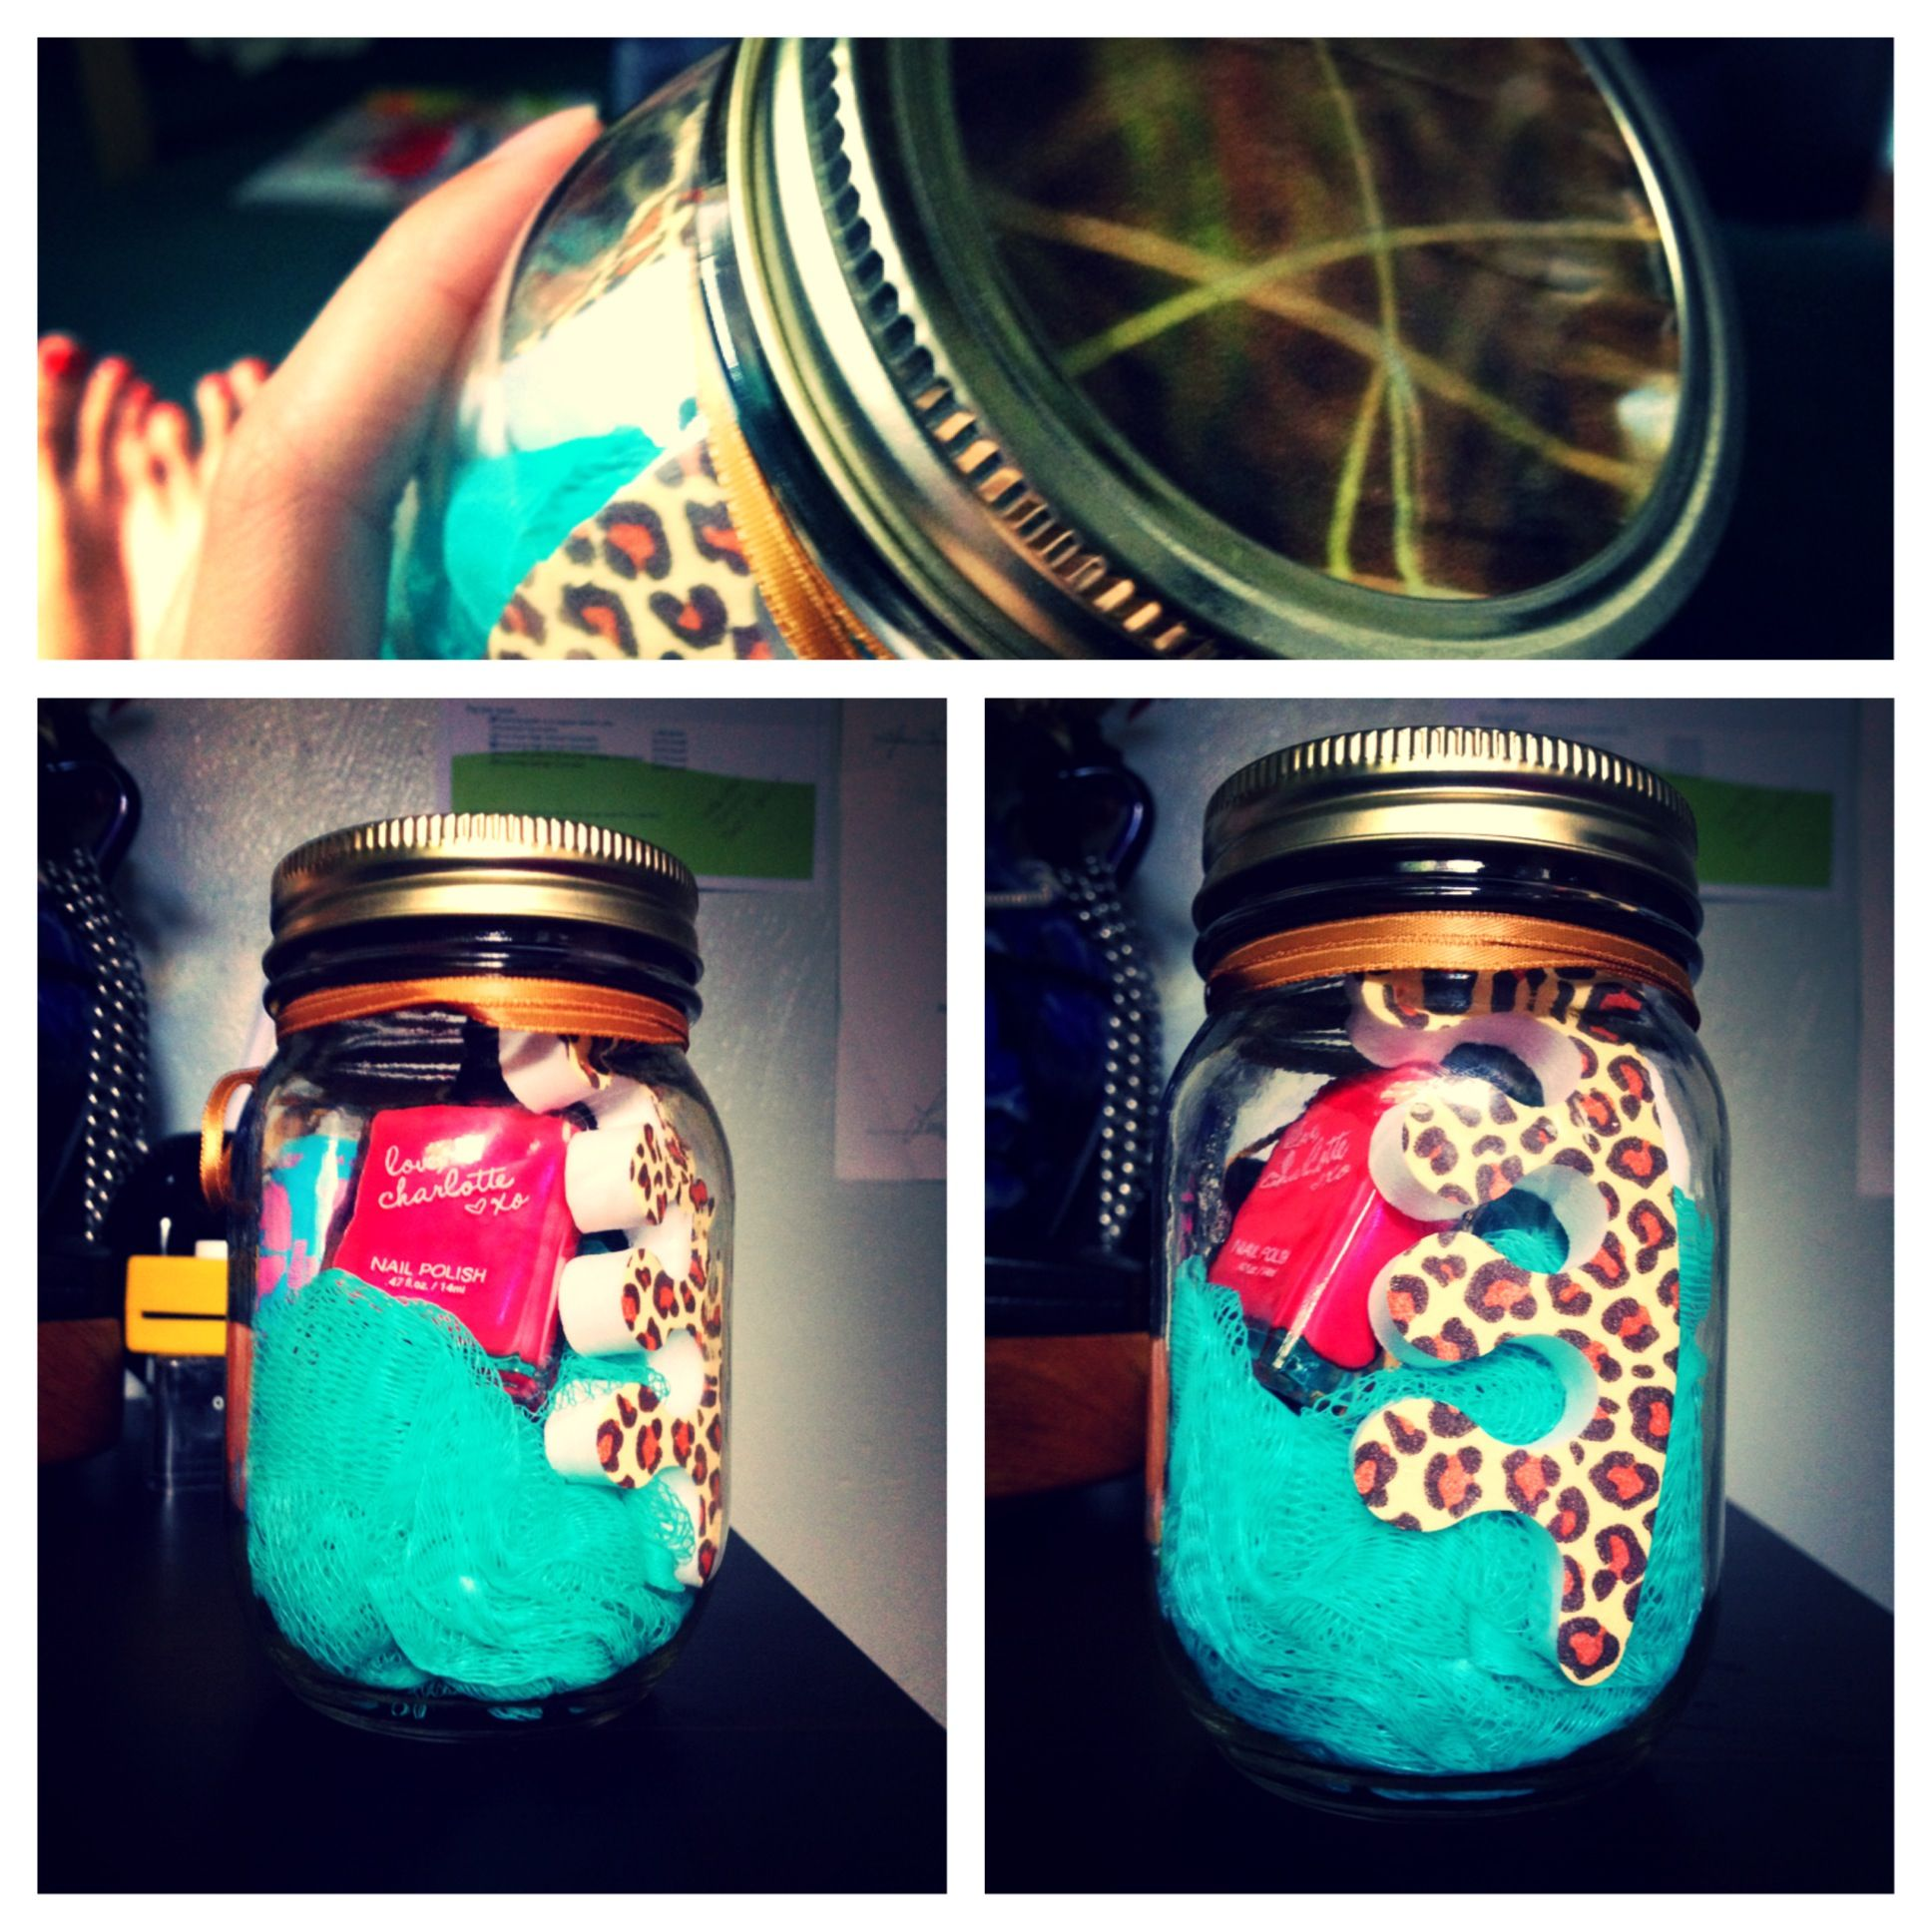 DIY Birthday Gift 650 Toe Separators Nail Polish Maybelline Baby Lips Loofa Mason Jar I Just Slipped A Magazine Put Some Mod Podge On The Lid To